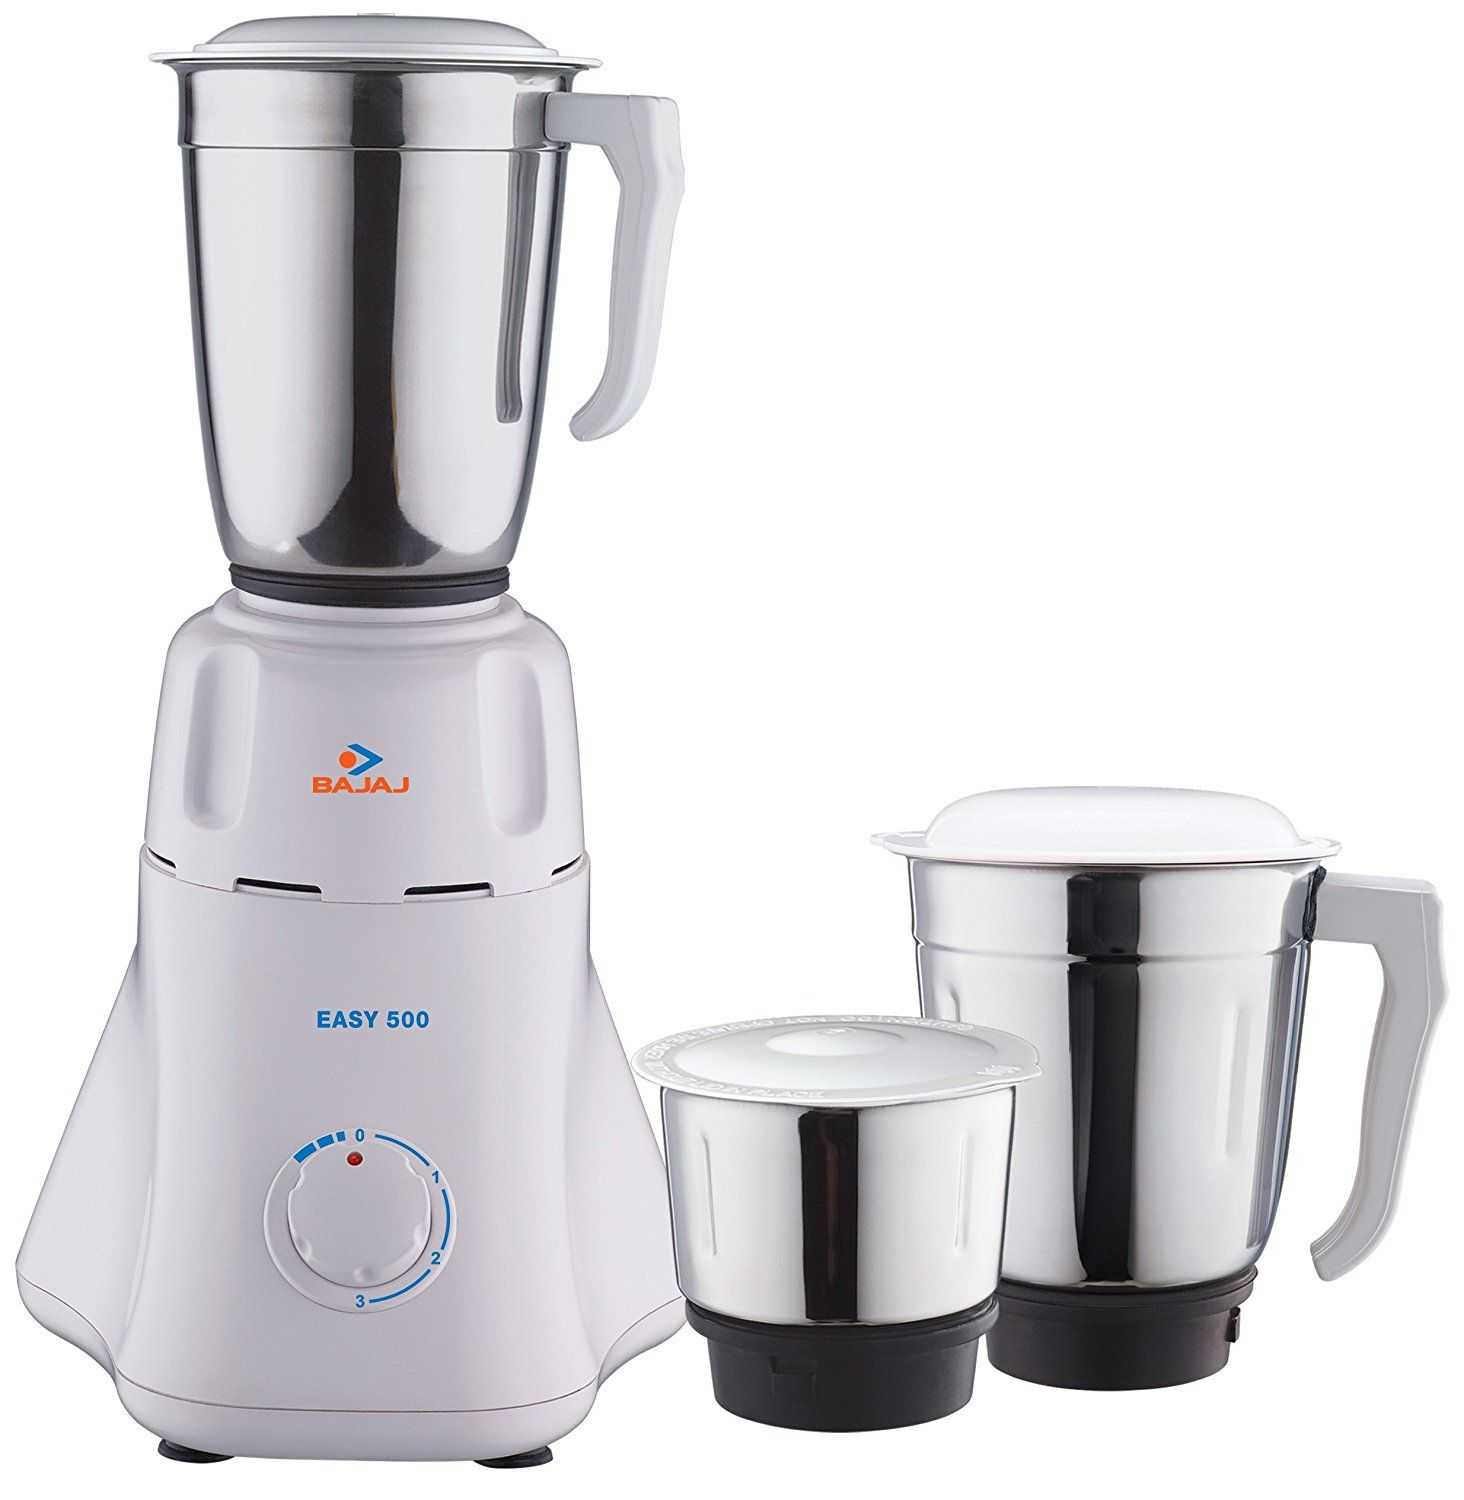 Bajaj Easy 500-Watt Mixer Grinder with 3 Jars (White) | kitchen ...